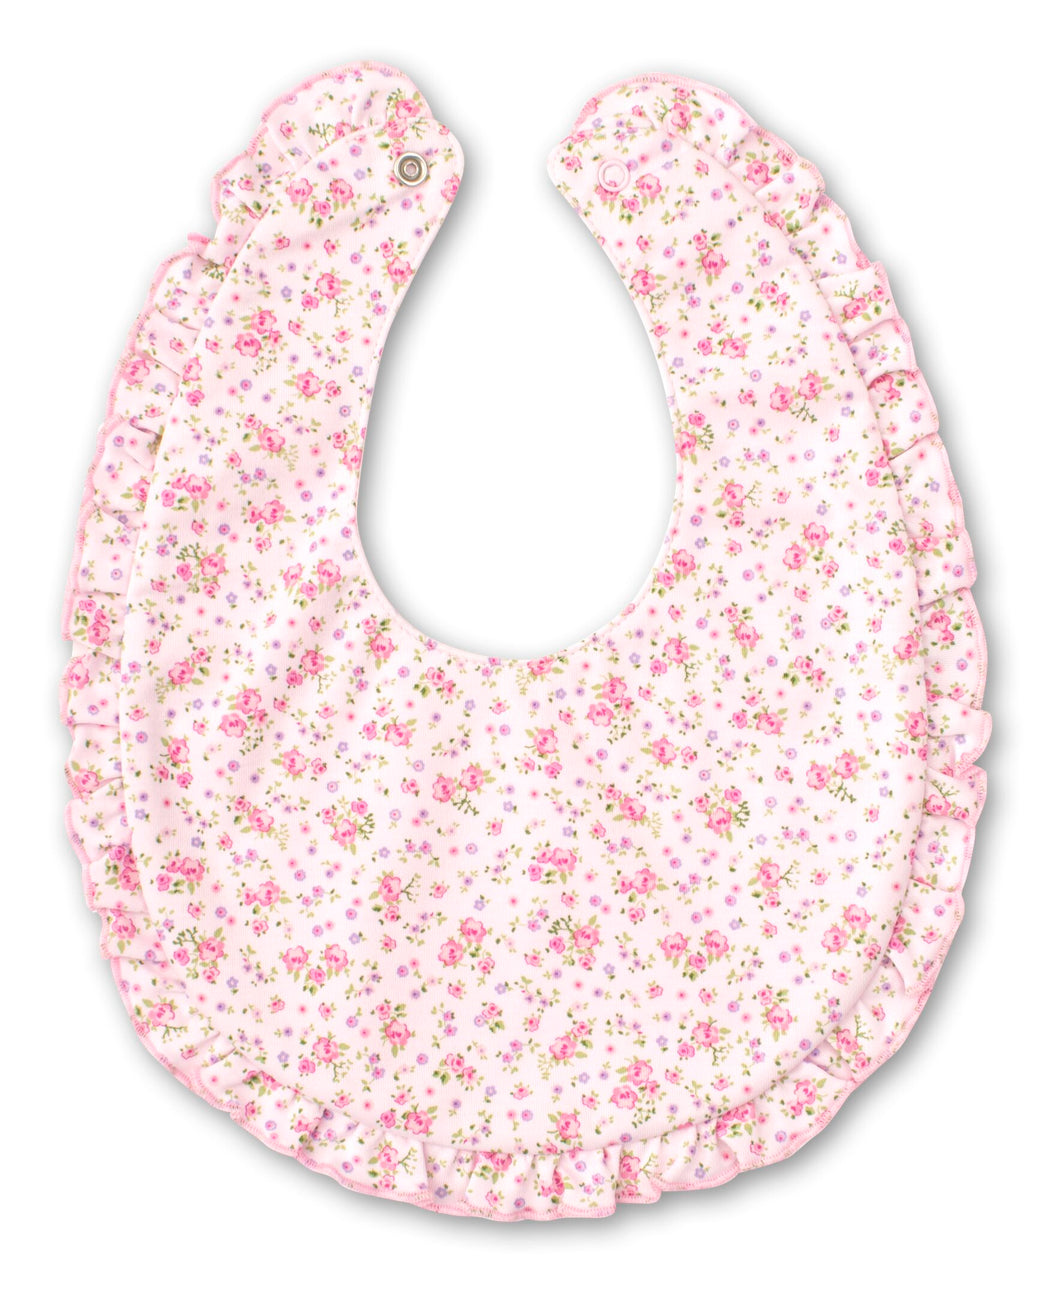 Dusty Rose Bib - Pink Print